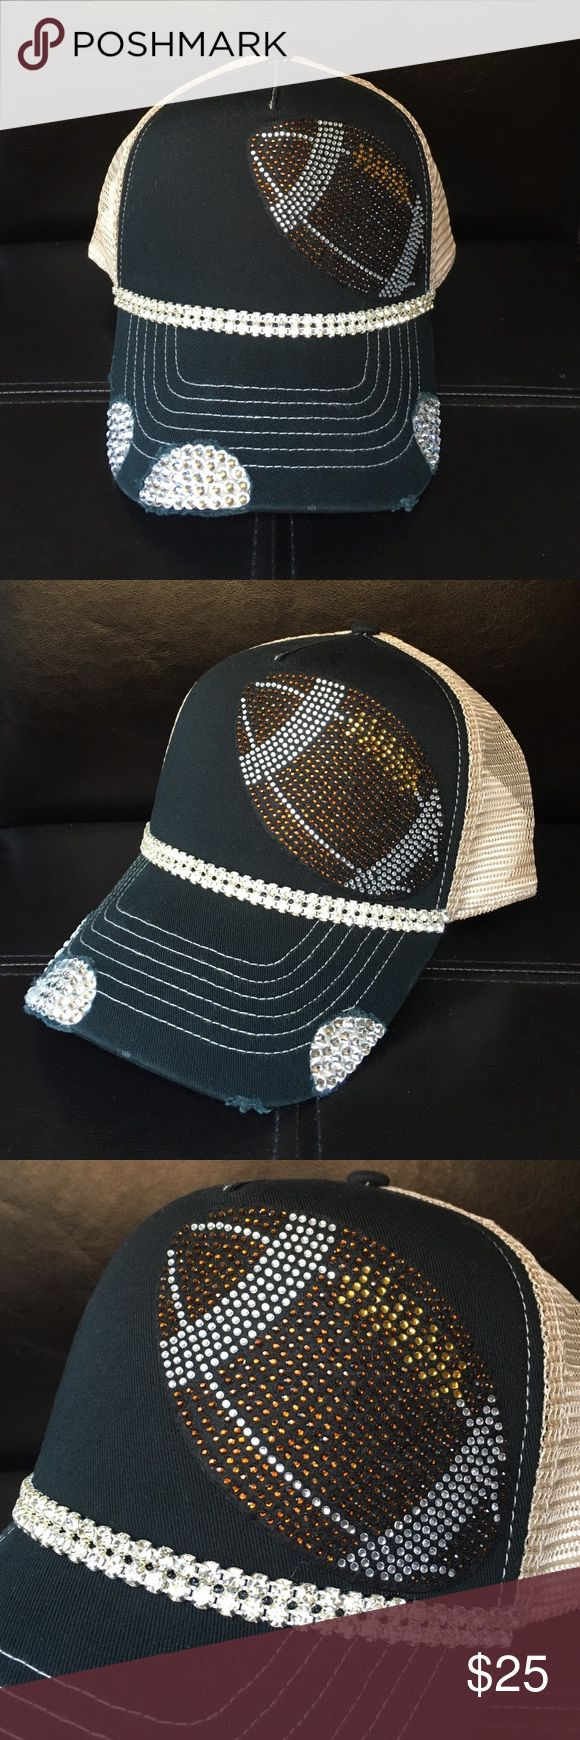 Black football bling trucker hat Handmade black football bling trucker hat. Swarovski crystals and trim. Beige mesh for backing. Perfect for football season and football moms! Accessories Hats